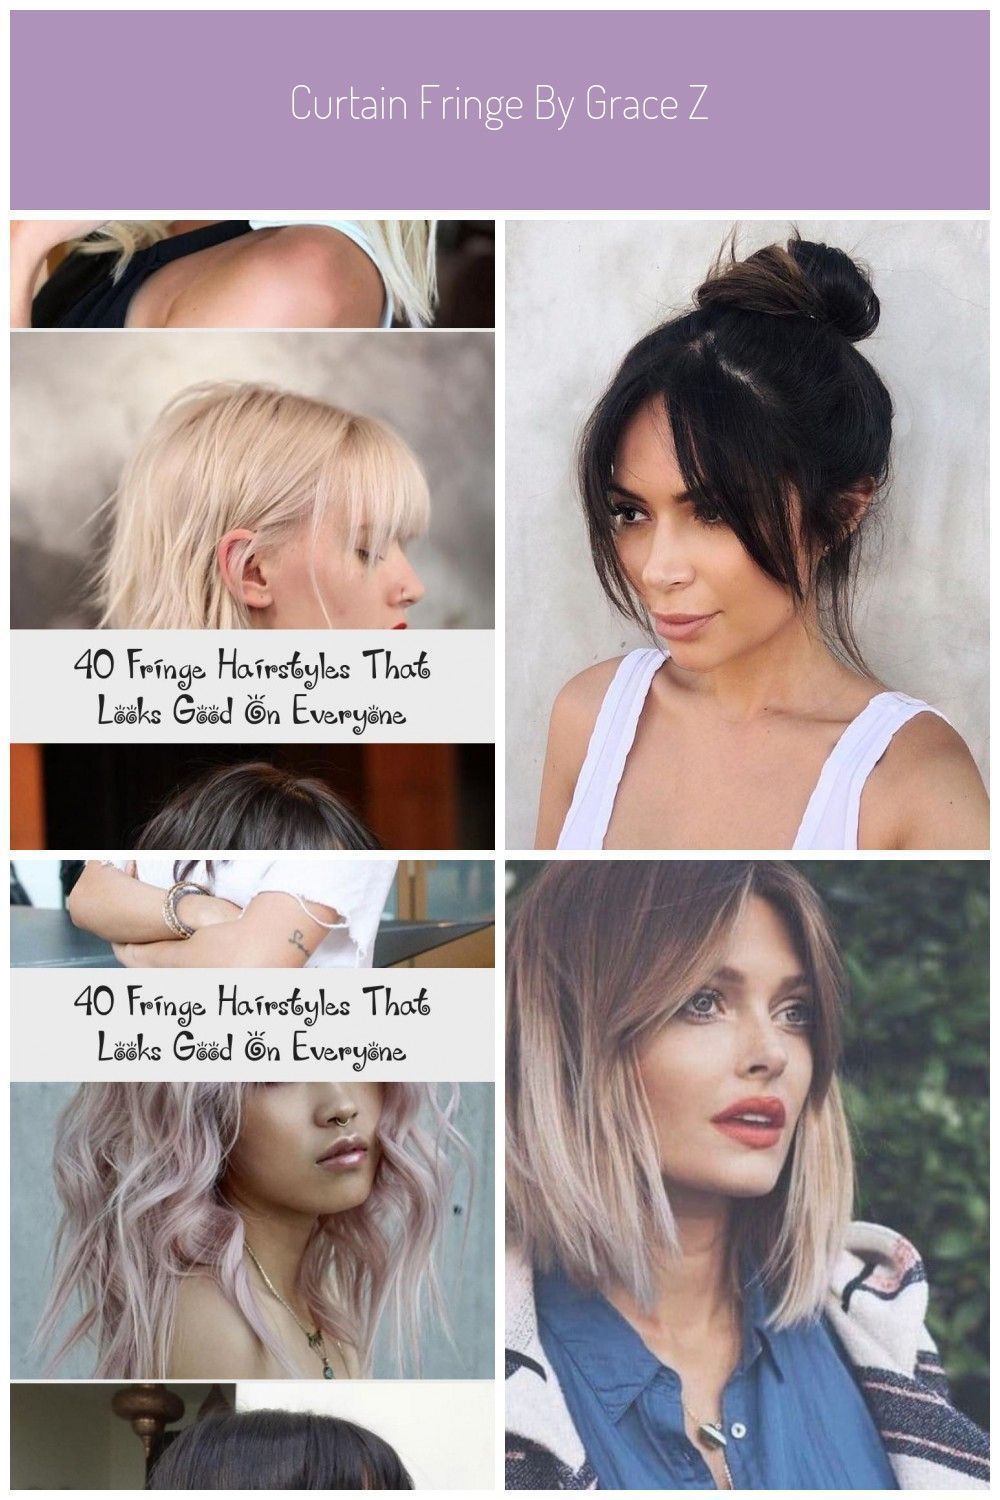 Platinum Wavy Bob With Seamless Layers And Curtain Bangs The Latest Hairstyles For Men And Women 2020 Hairstyleology Braids For Medium Length Hair Bangs With Medium Hair Curtain Bangs